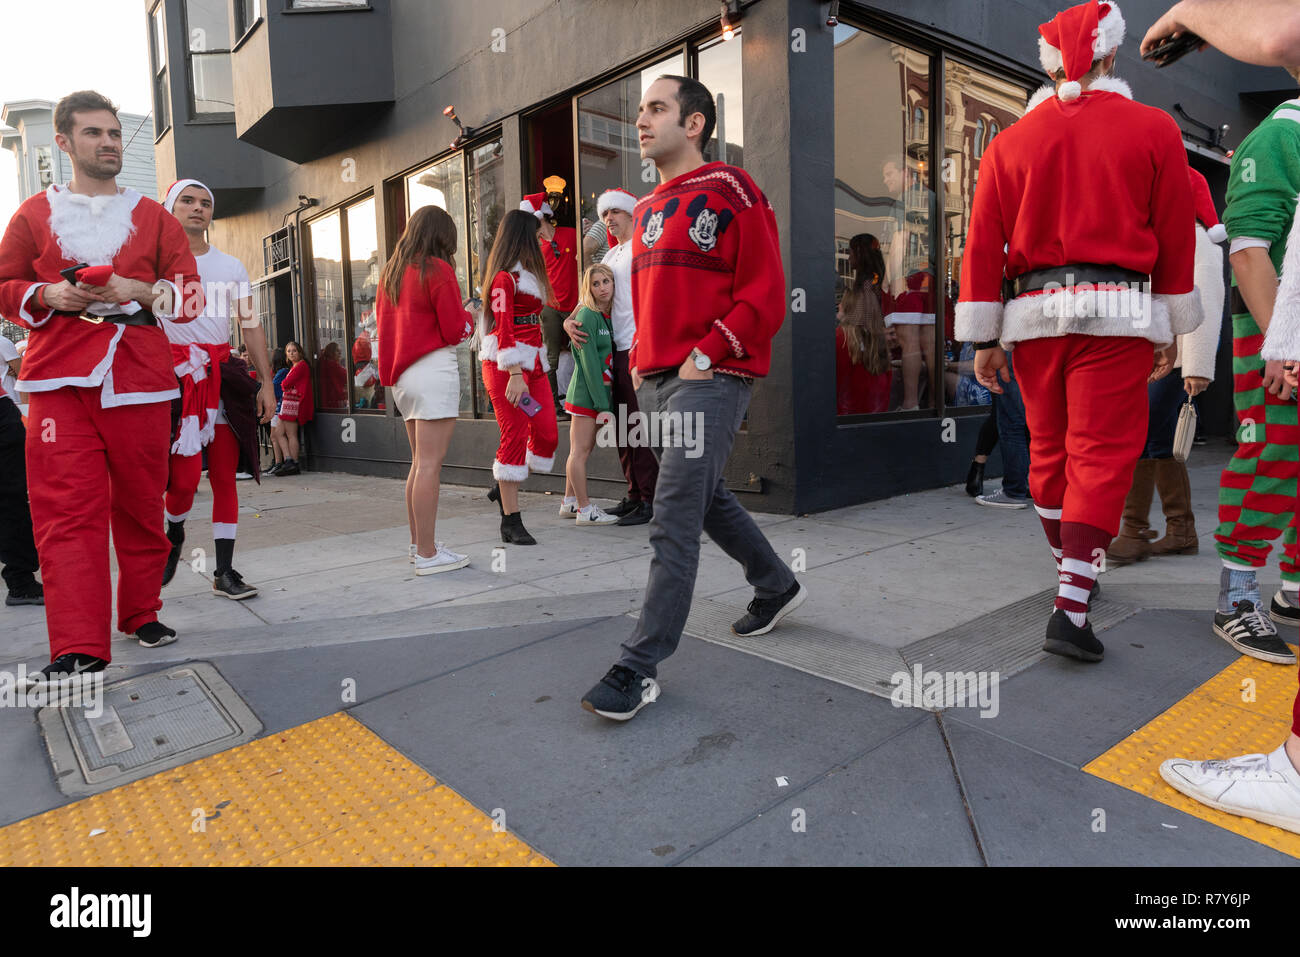 Holiday revelers in San Francisco dressed in Santa Claus/Christmas costumes for the annual SantaCon pub crawl. - Stock Image